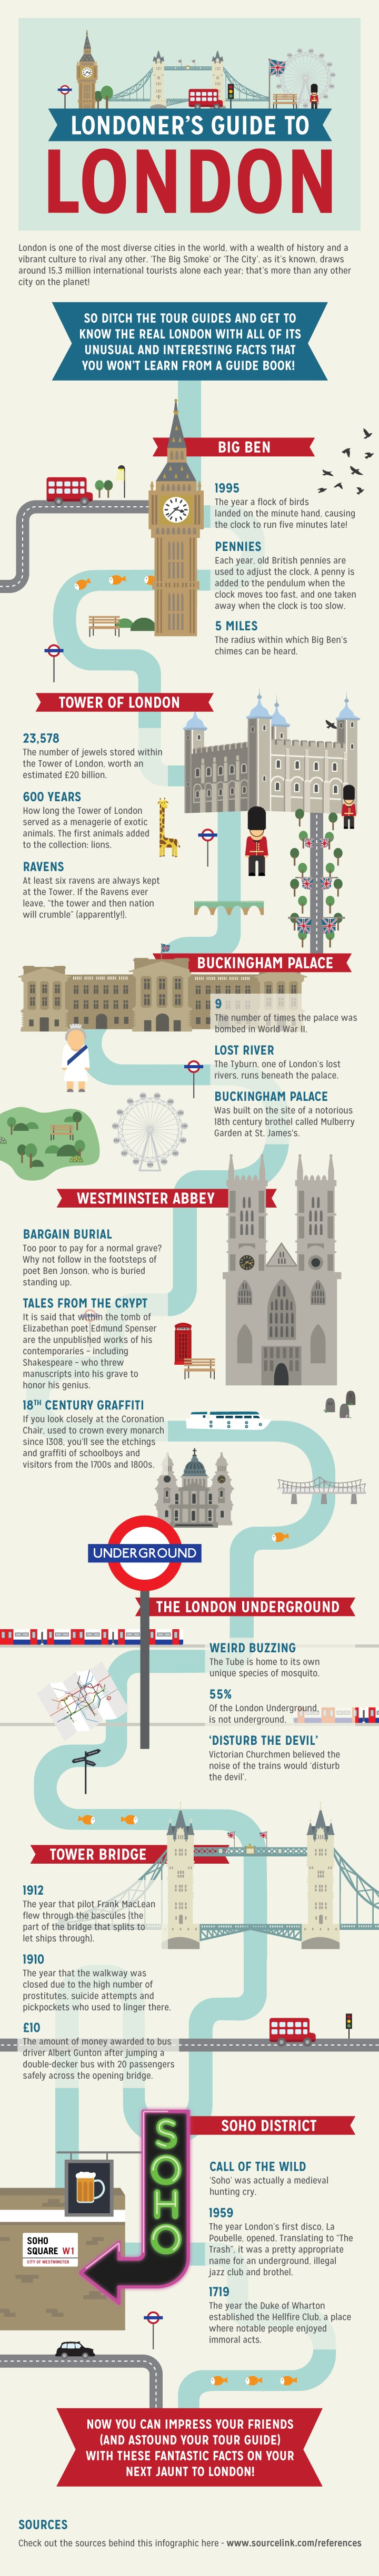 Londoners Guide to London Infographic